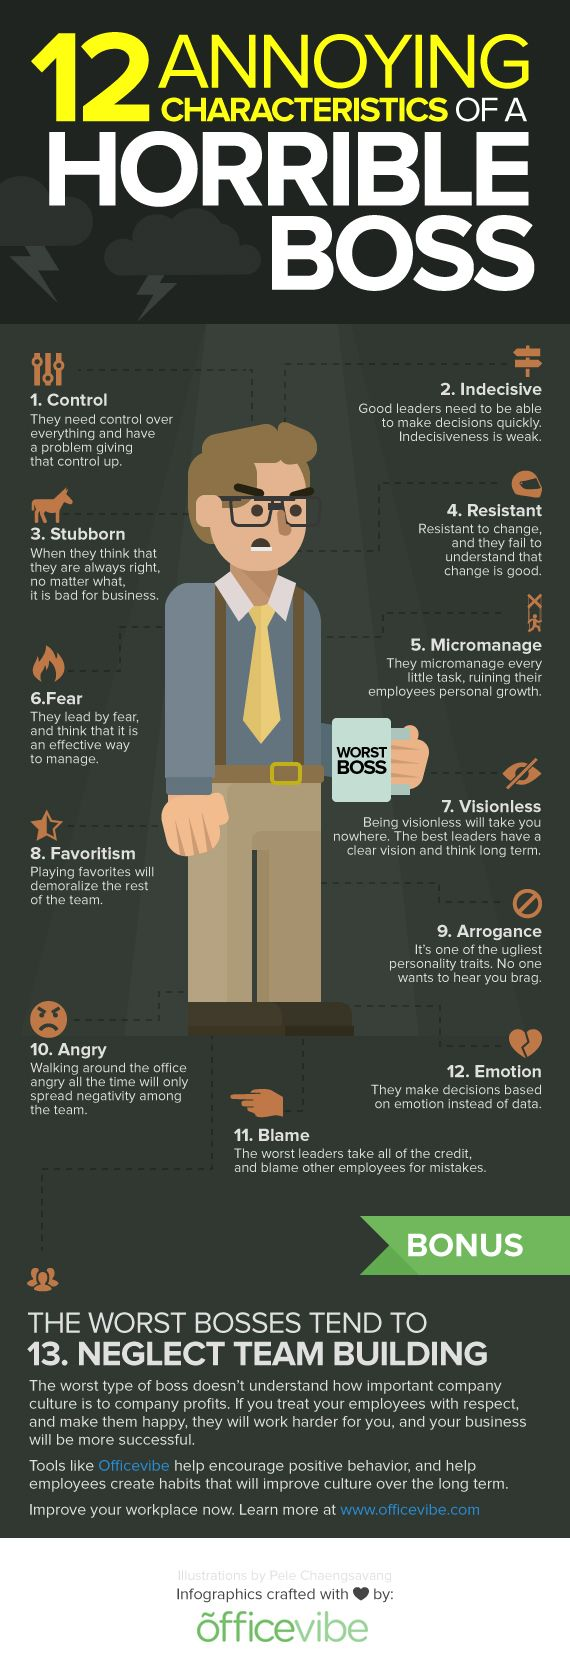 12 Annoying Characteristics of a Horrible Boss #infographic